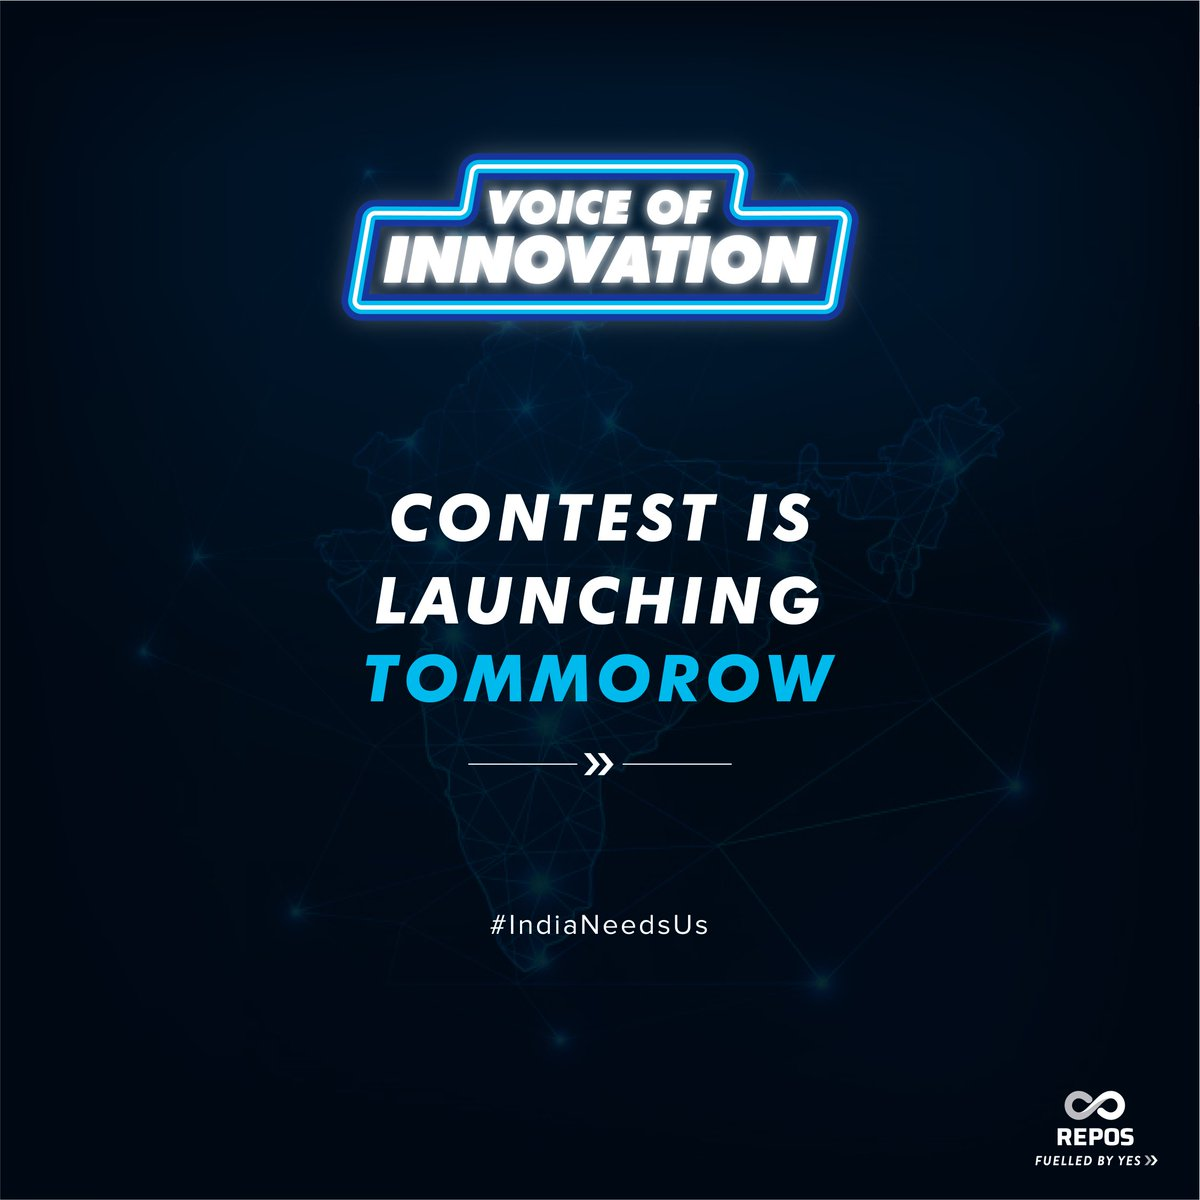 Click the link to know more - https://t.co/OBmvZbpn7f  • #reposenergy #voiceofinnovation #contestcomingsoon #contest #contestalert #contestalertindia #contestinindia #contestindia https://t.co/6OwV2c1MDV